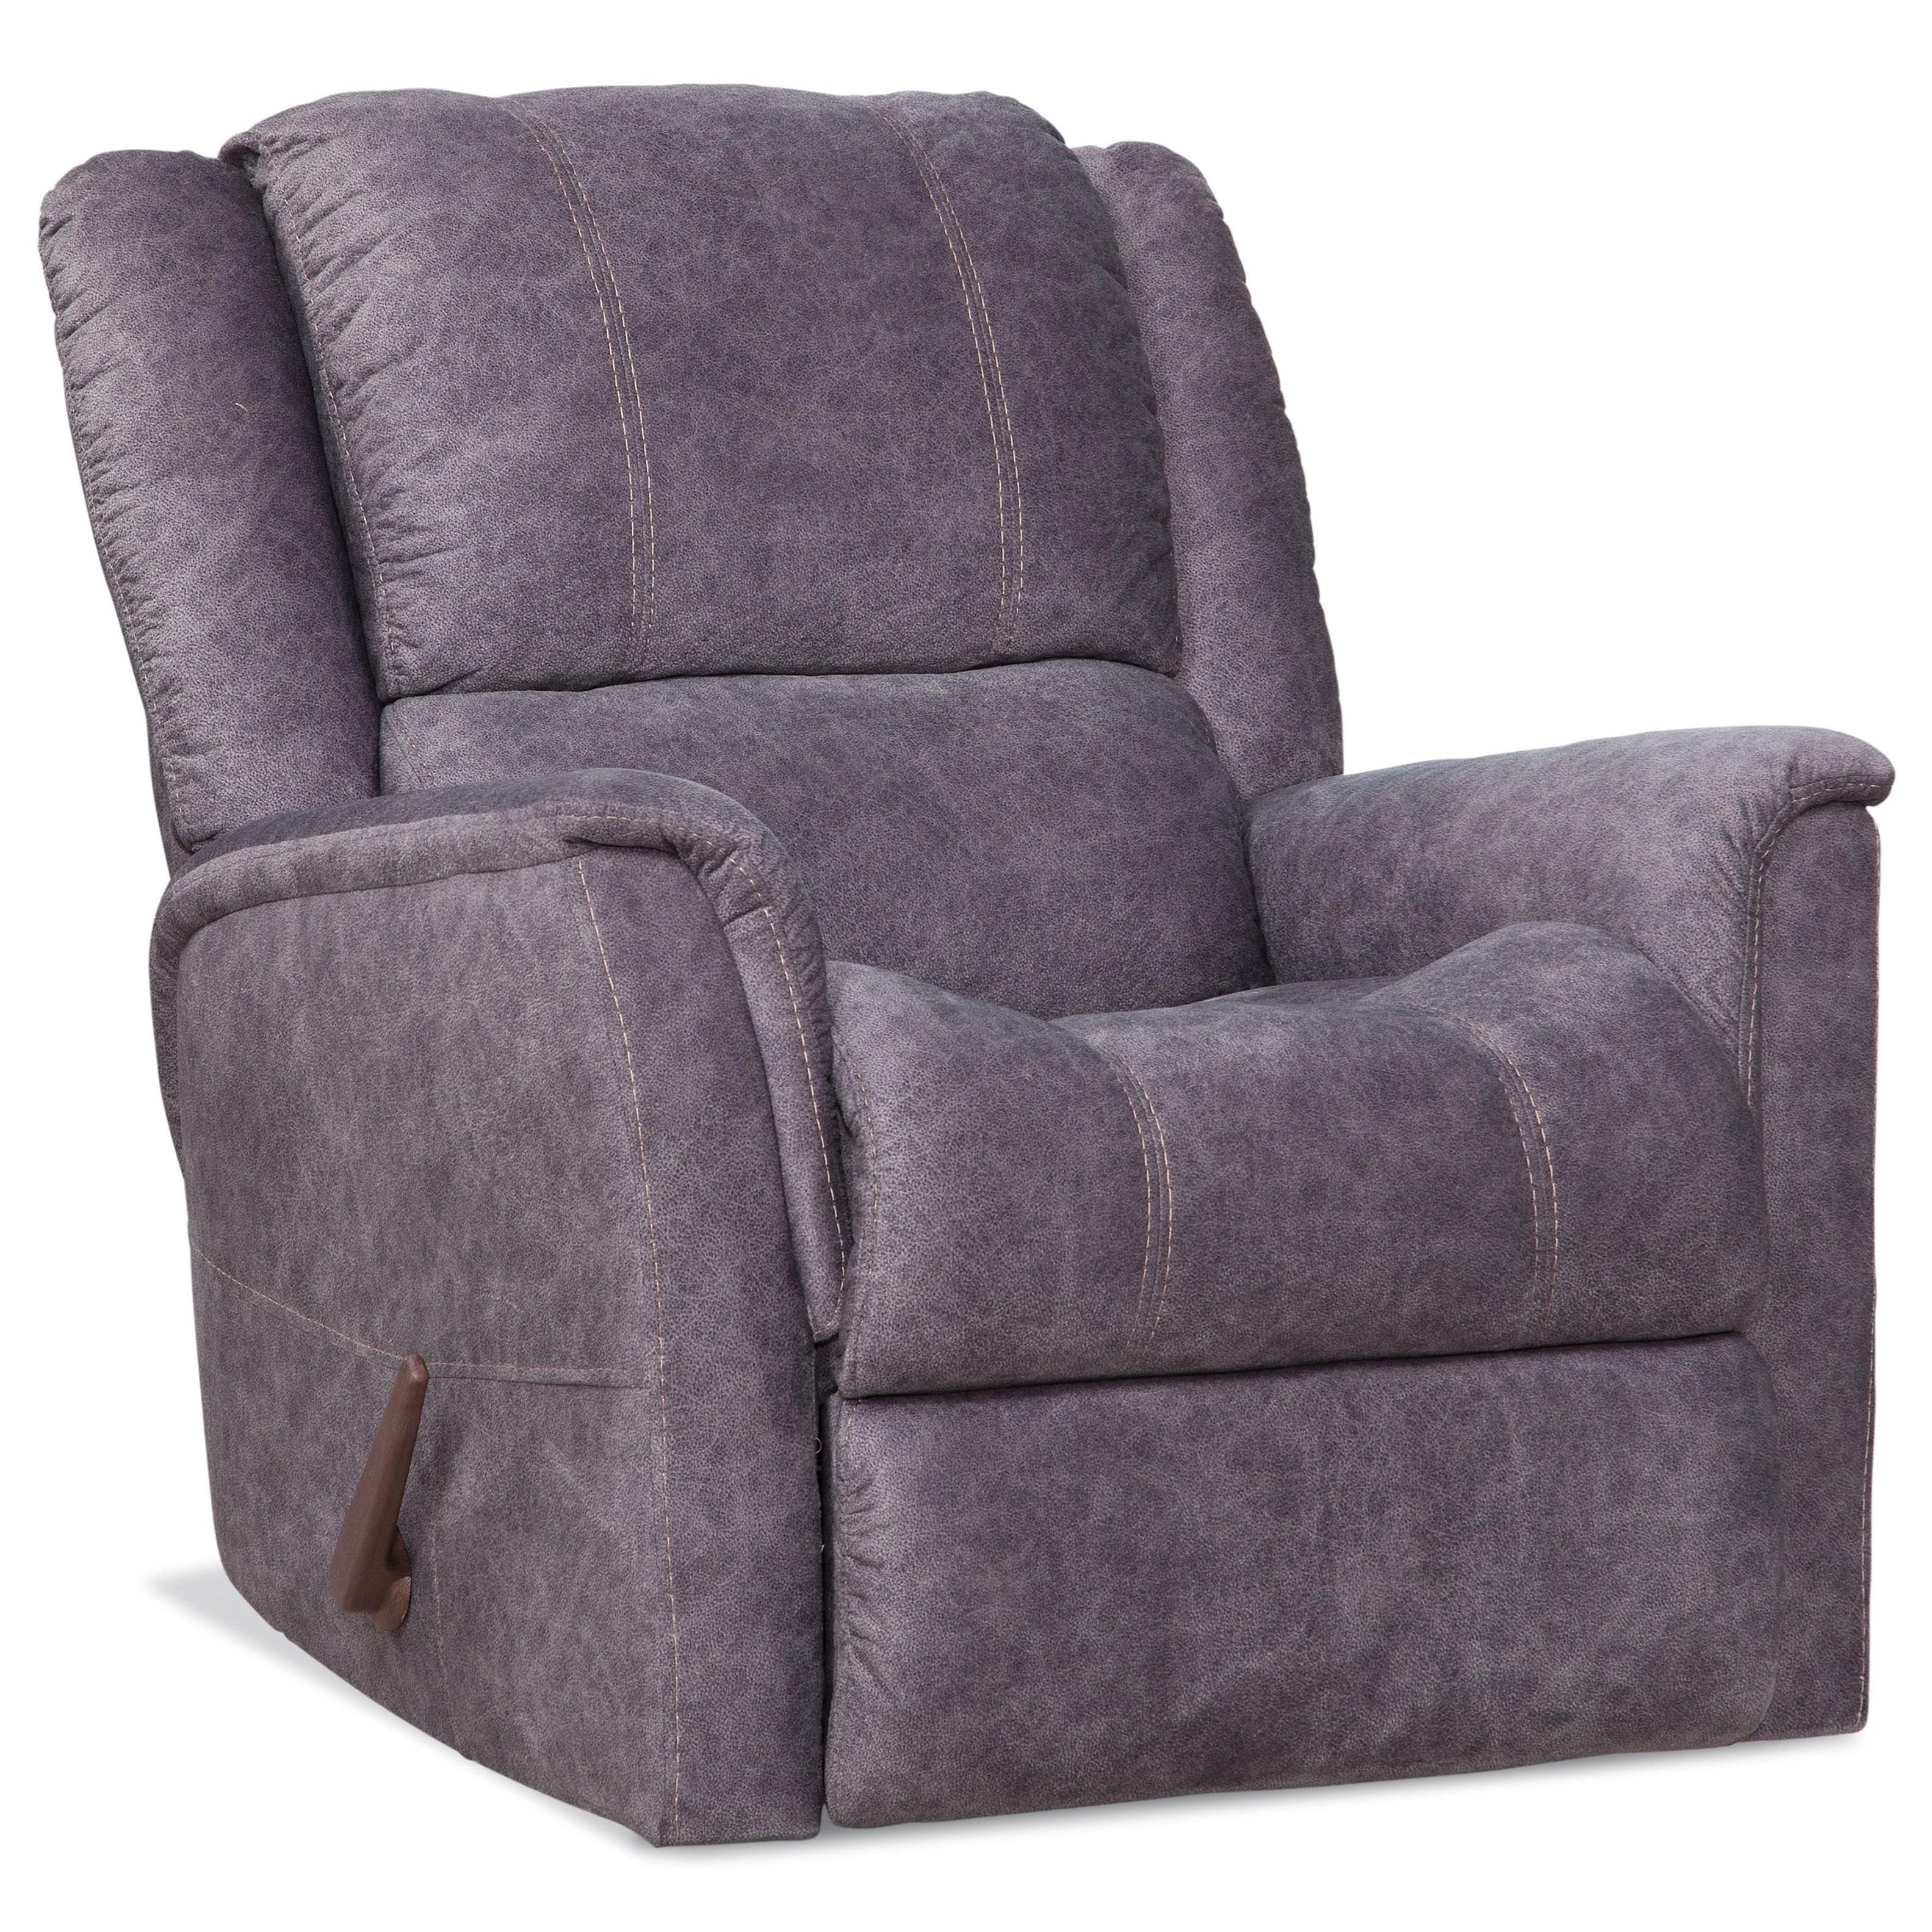 172 Casual Rocker Recliner by HomeStretch at Gill Brothers Furniture